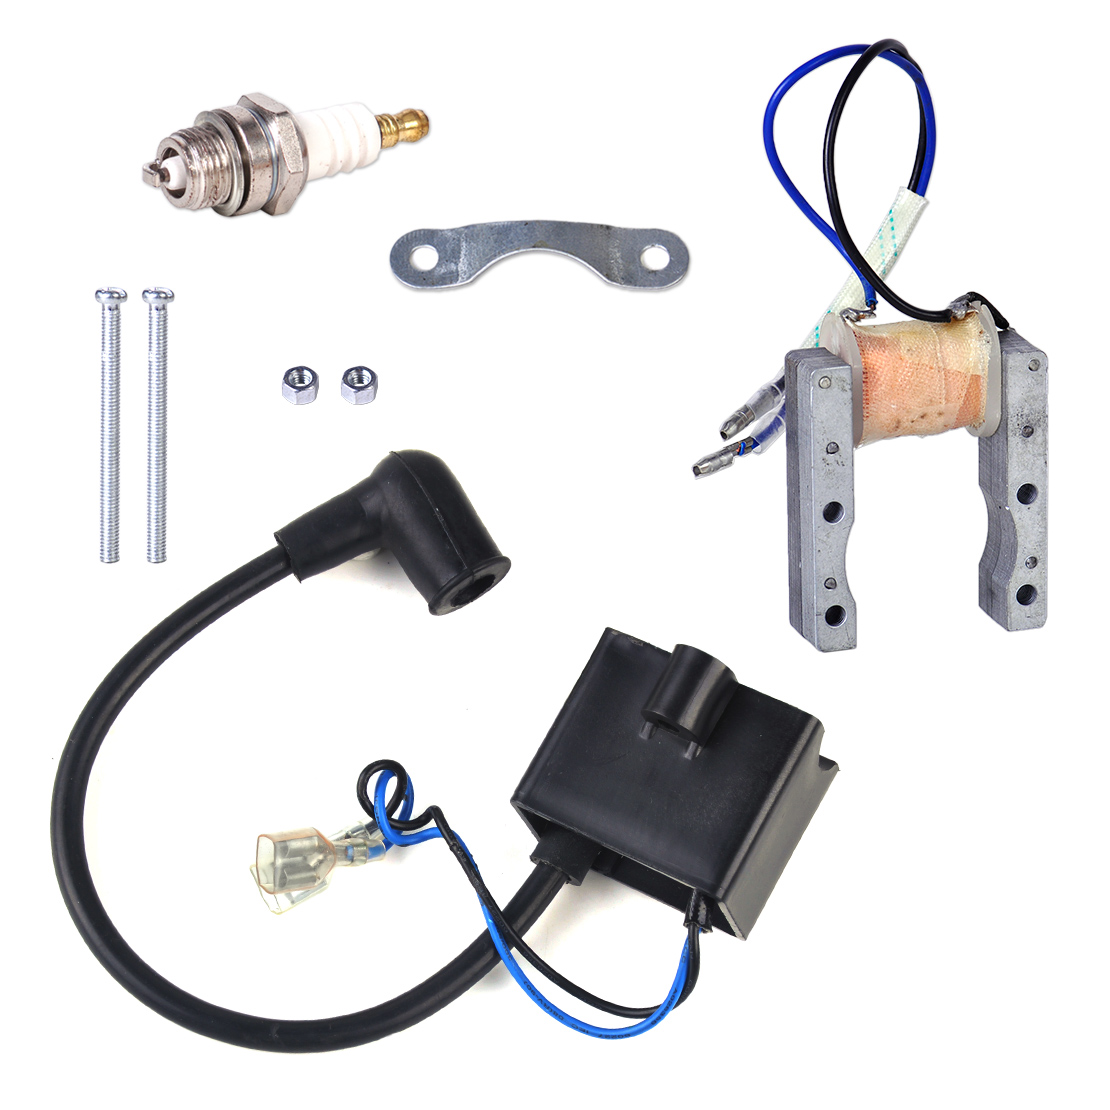 Ignition Coil Spark Plug Magneto For 49 50cc 60cc 80cc Engine 2 Cycle Wiring Schematic